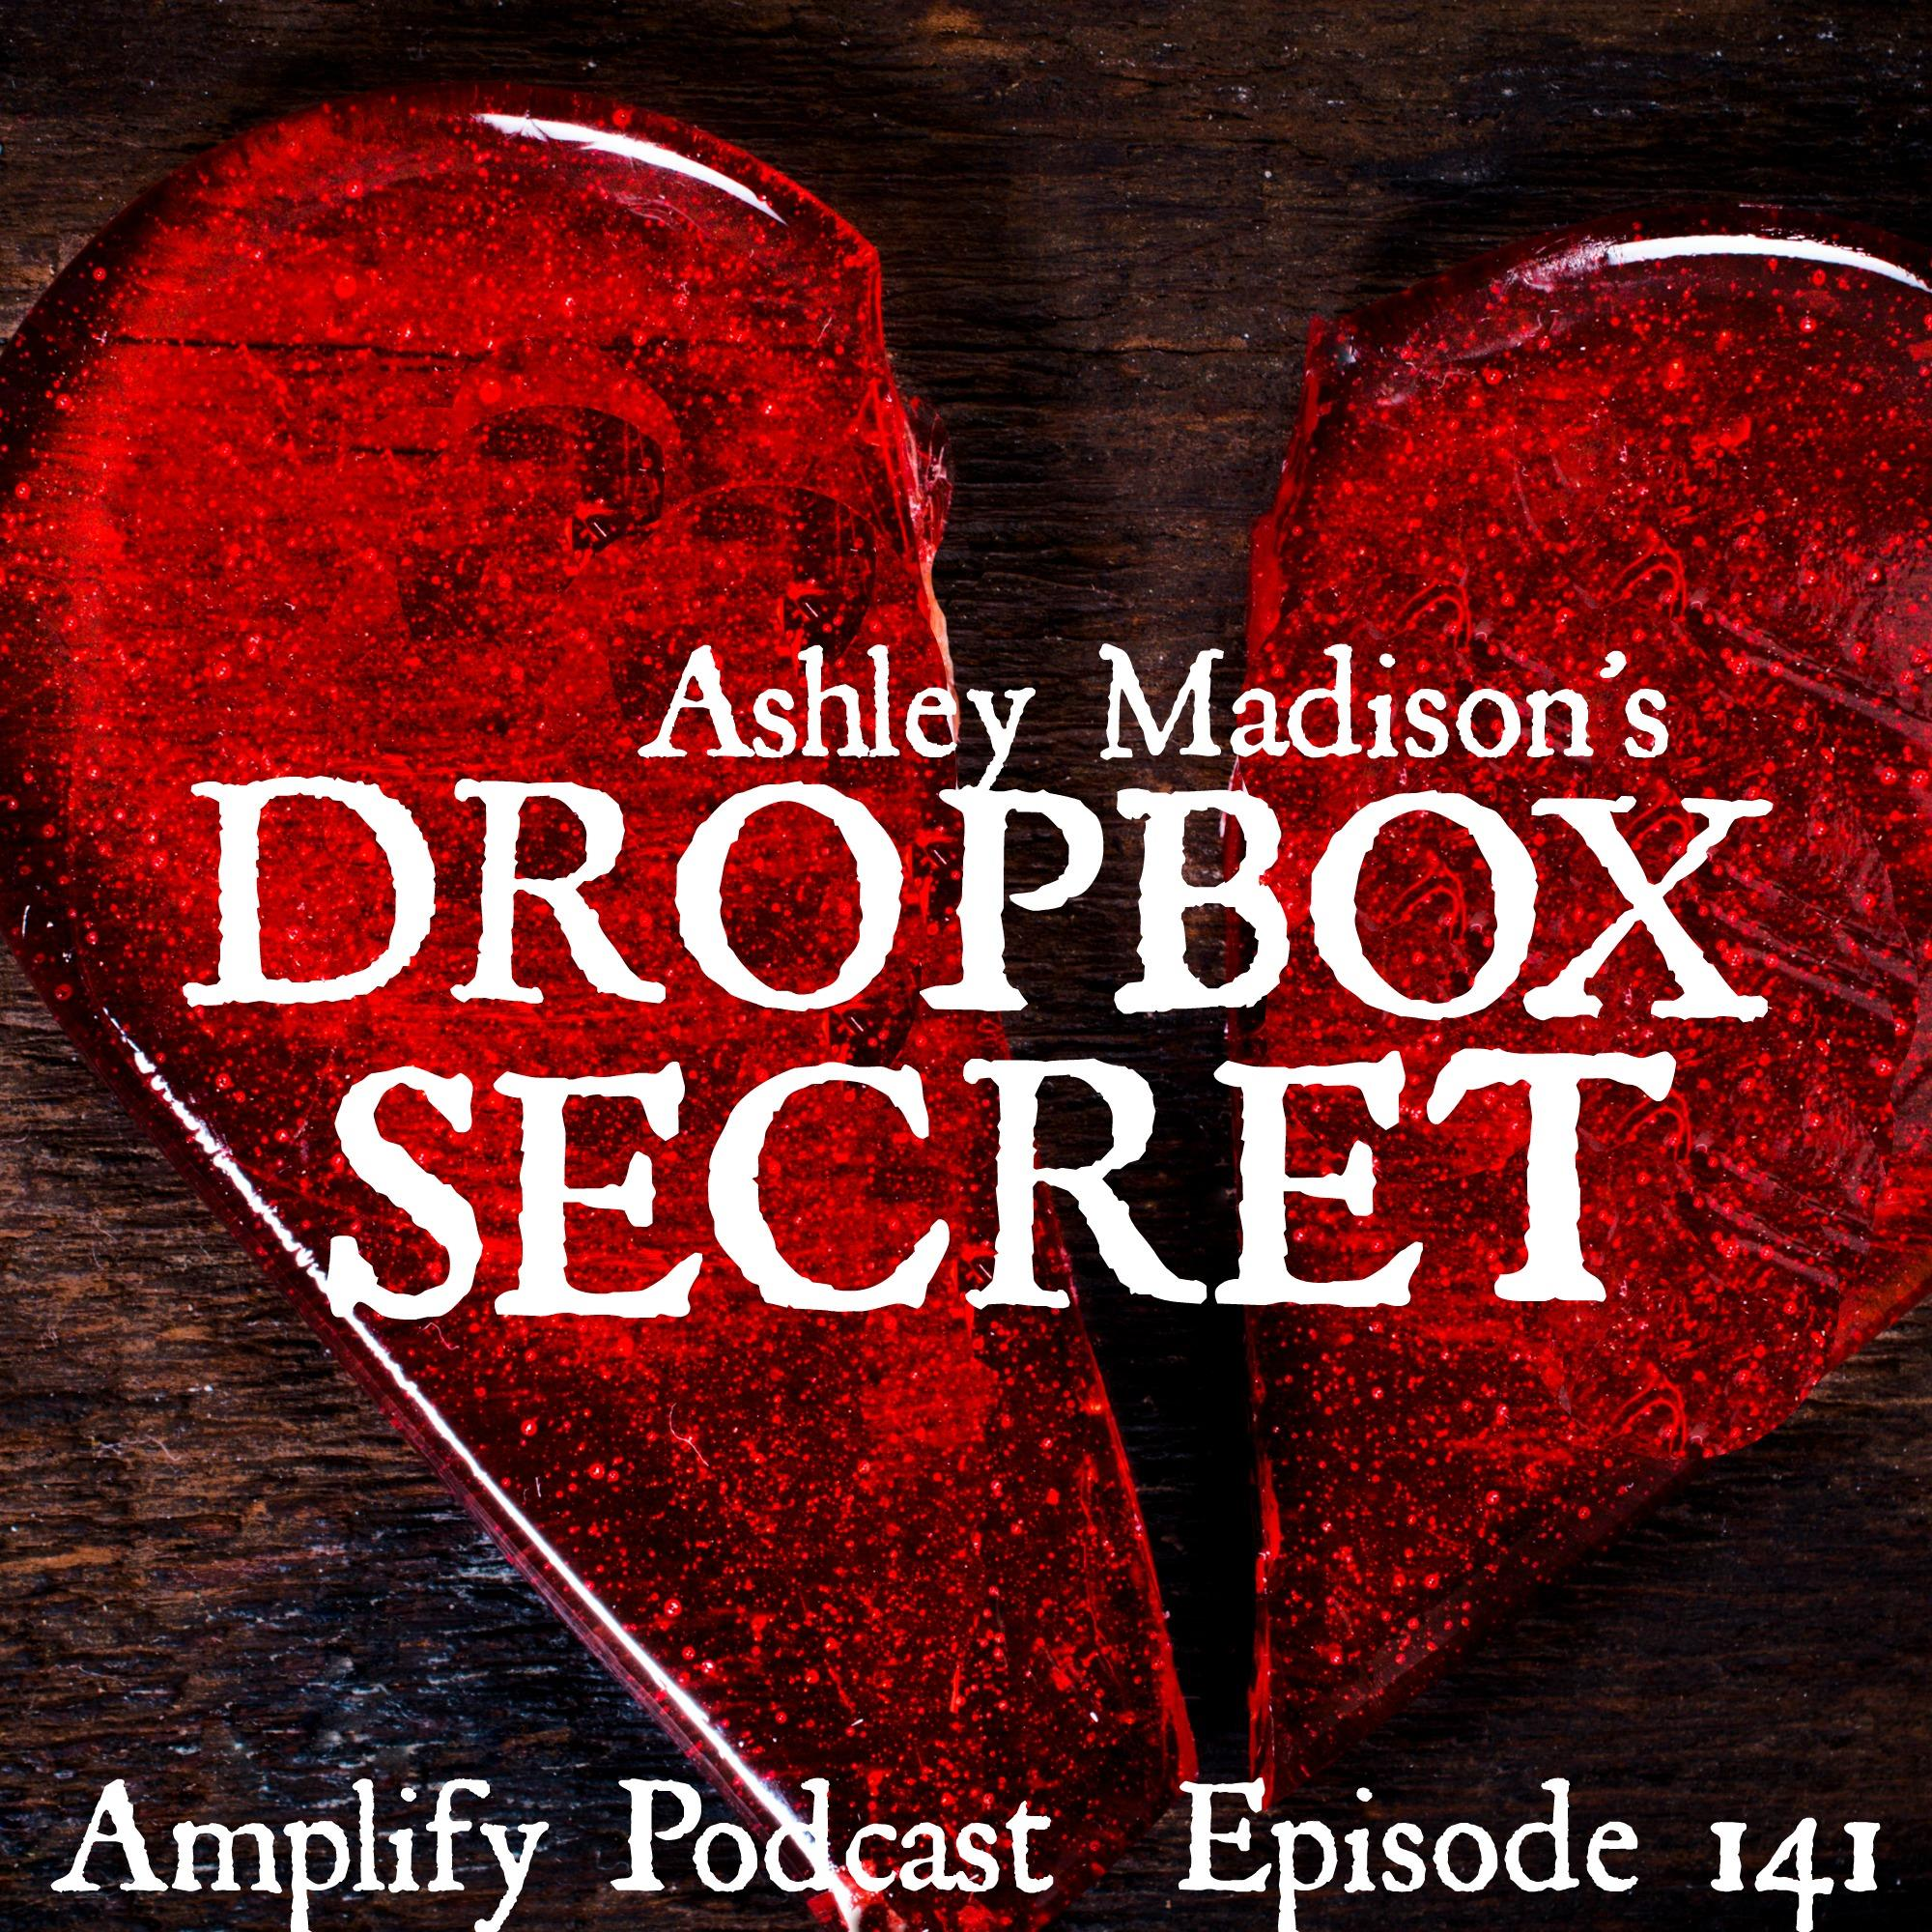 Ashley Madison's Dropbox Secret